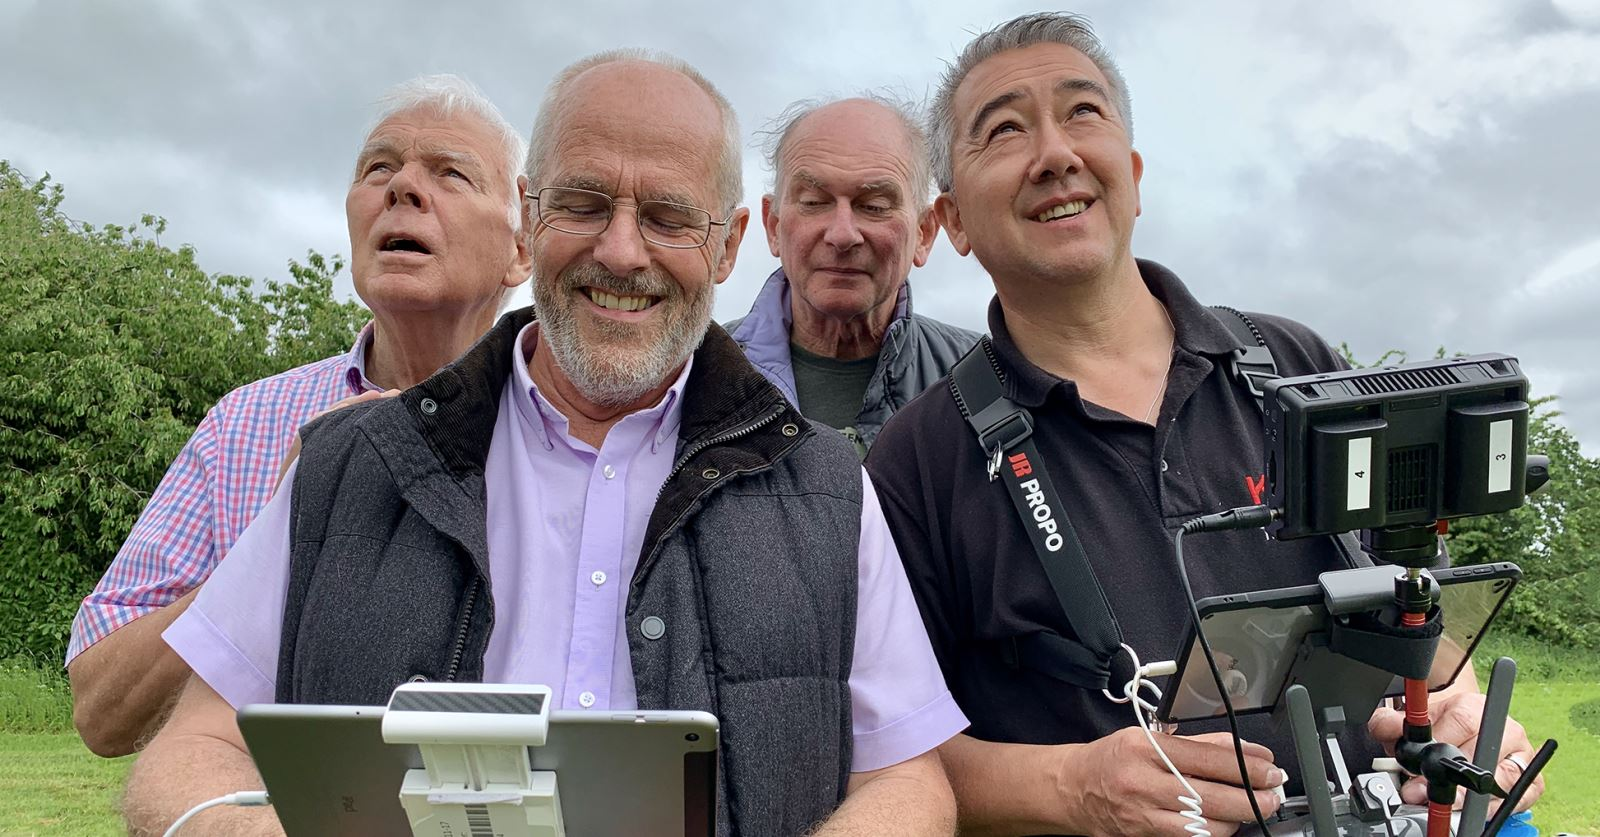 GTC Council members Keith Massey, Mark Howe and Clive North enjoying drone flying with the DroneMan Michael Kheng